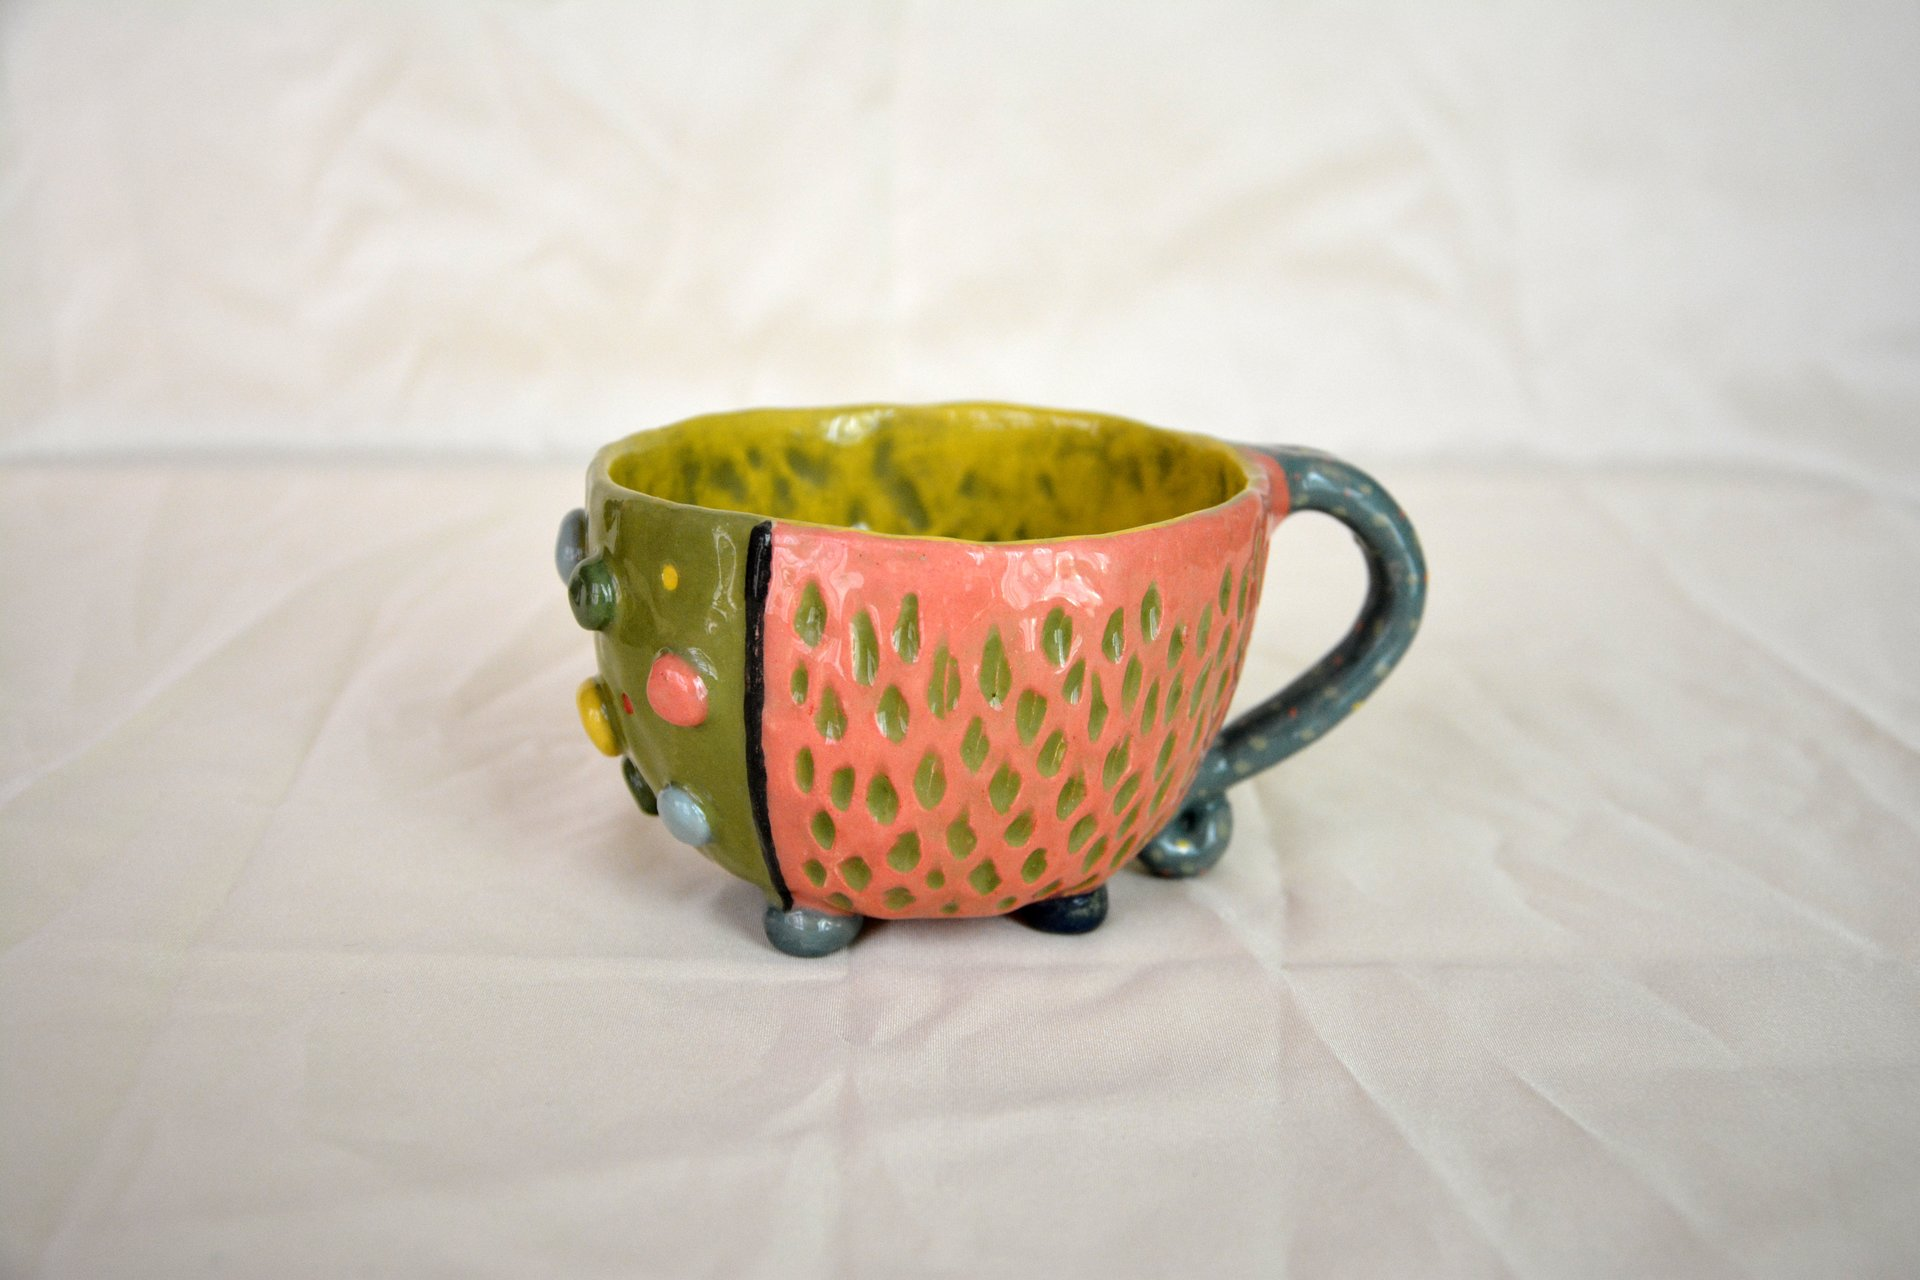 Bright color mug - Cups, glasses, mugs, height - 9 cm, volume - 350 ml, photo 1 of 3.